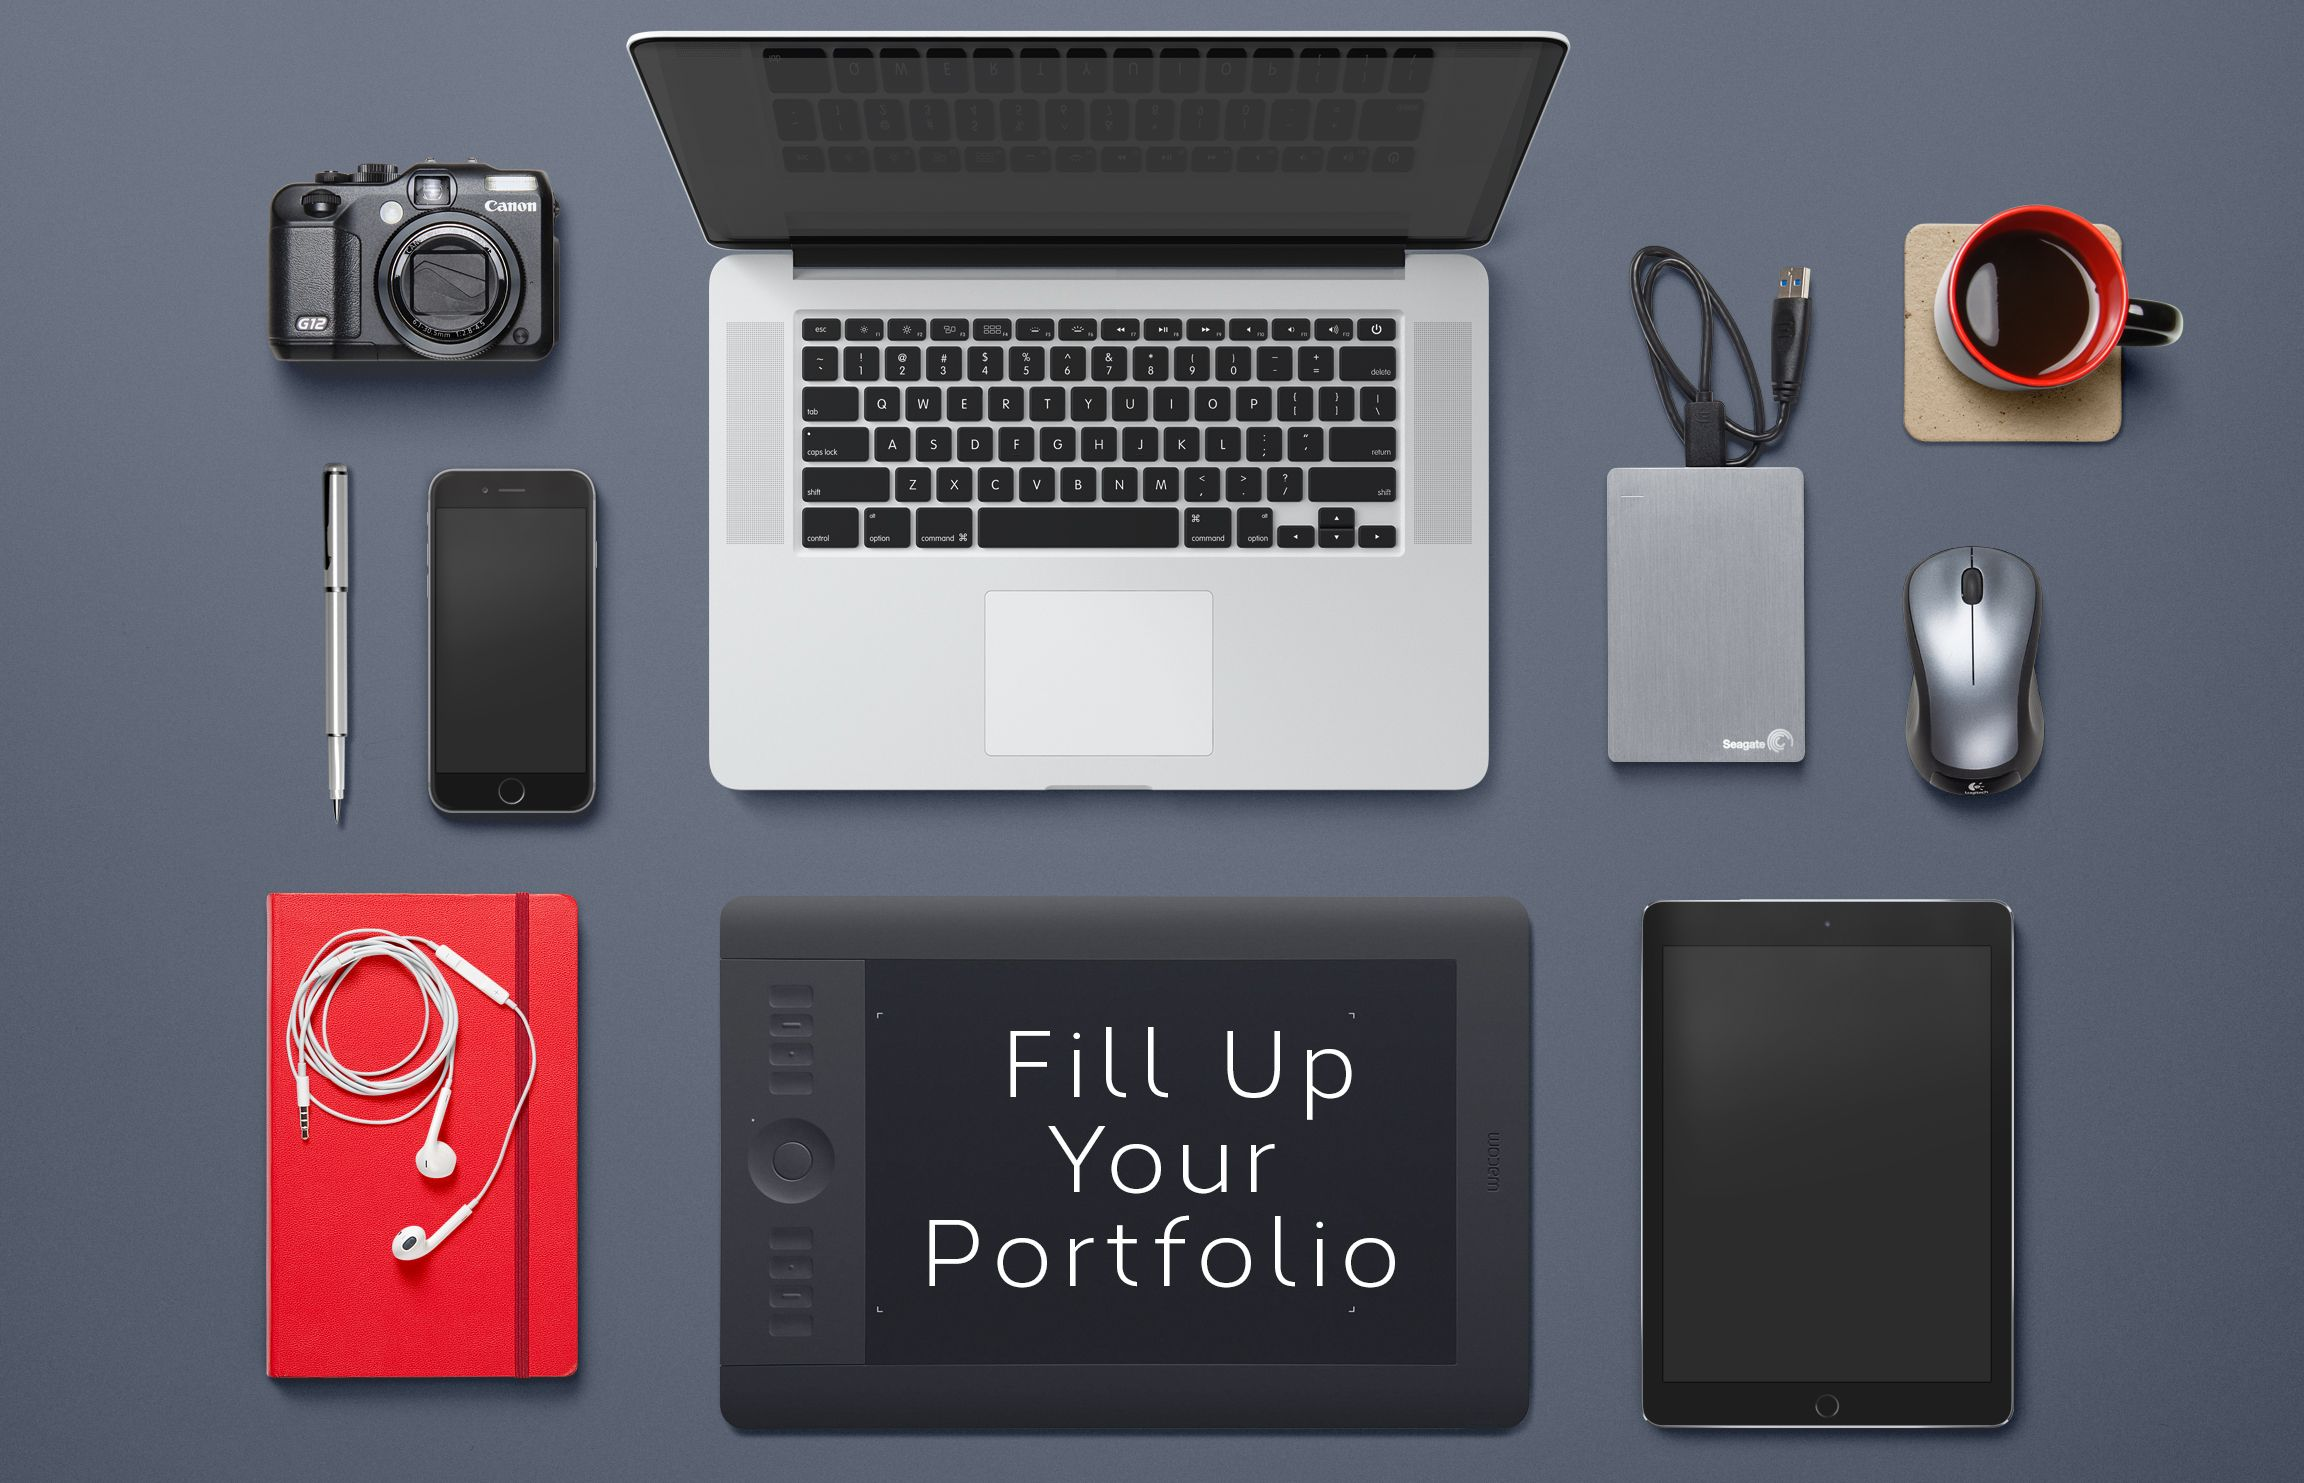 15 design ideas to fill up your portfolio httpinspirationfeedcom - Portfolio Design Ideas